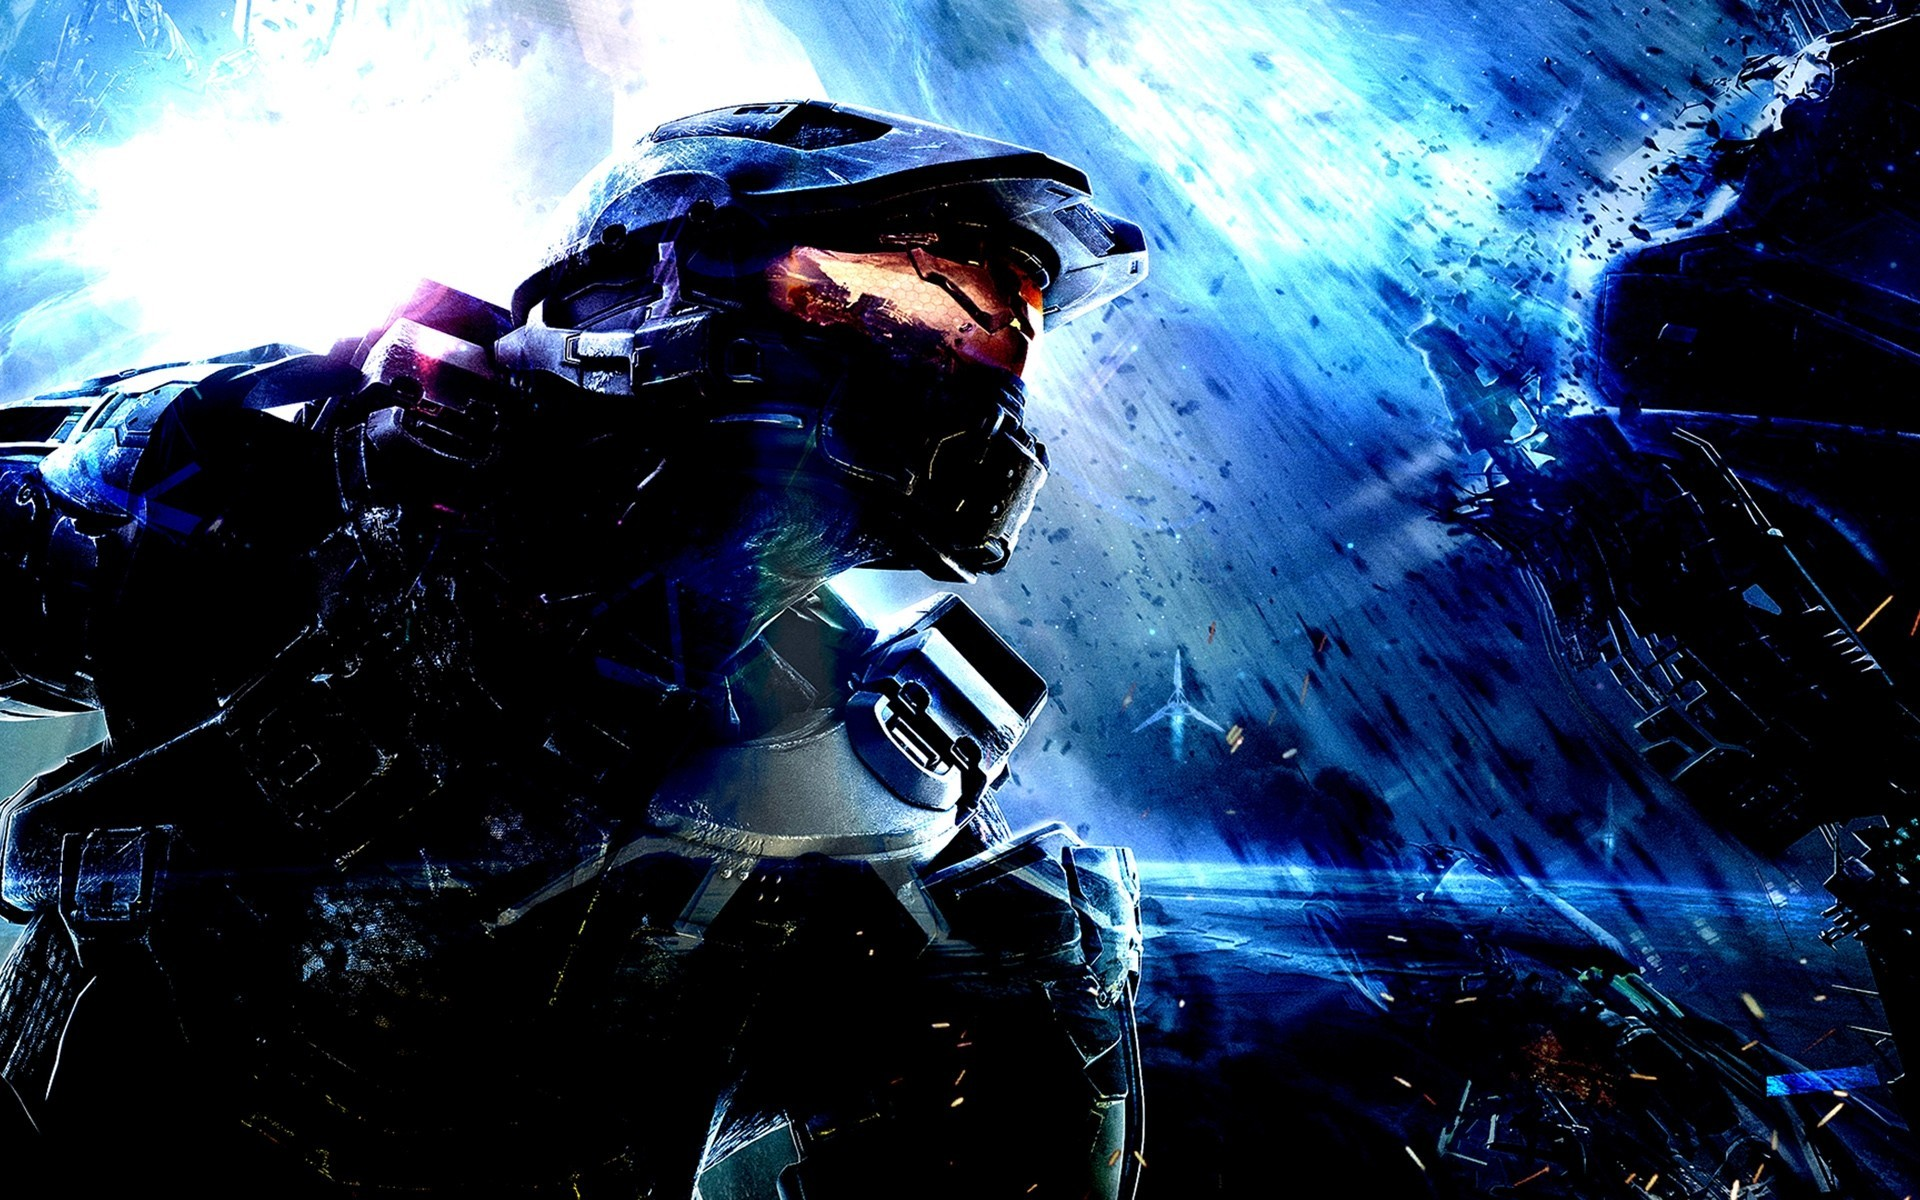 Best Gaming Wallpapers 4k Posted By Michelle Tremblay